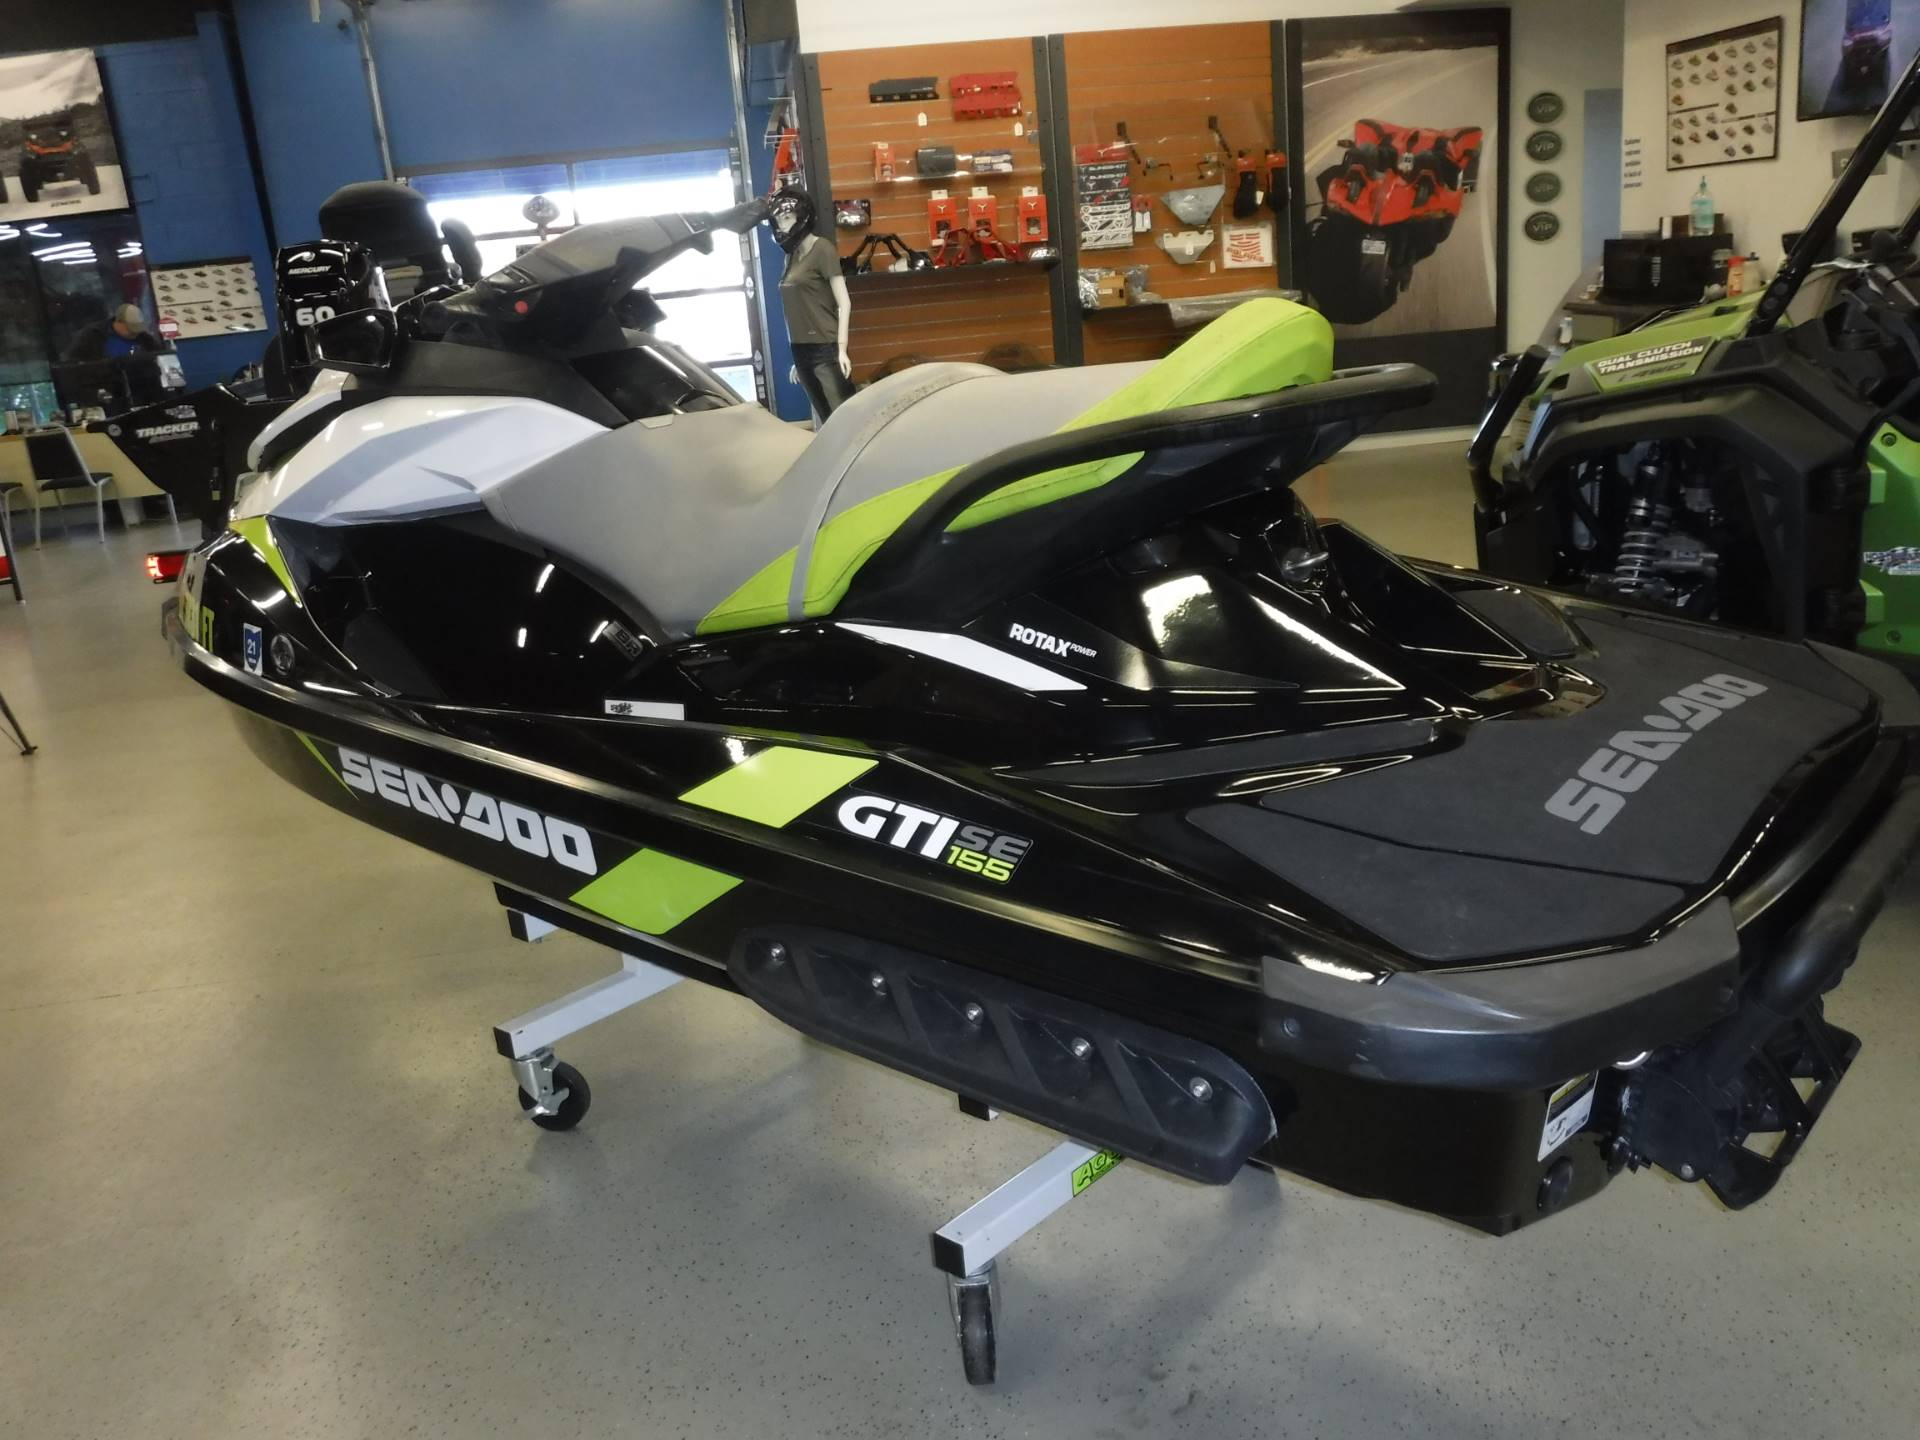 2017 Sea-Doo GTI SE 155 in Hermitage, Pennsylvania - Photo 5